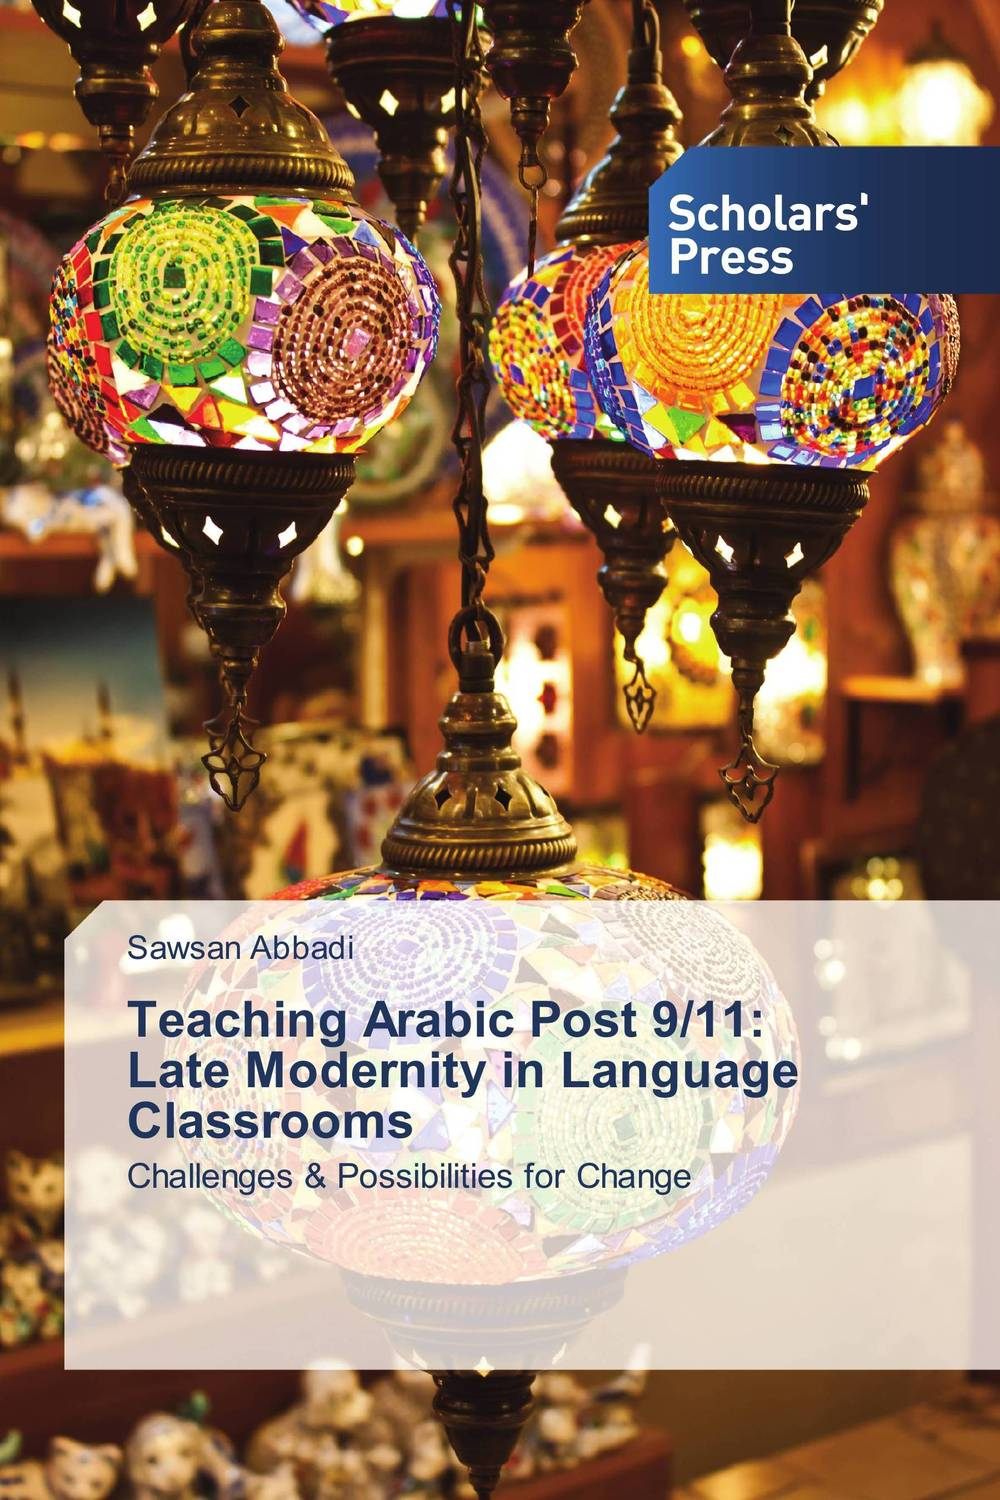 Teaching Arabic Post 9/11: Late Modernity in Language Classrooms problems face arabic and english foreign language students